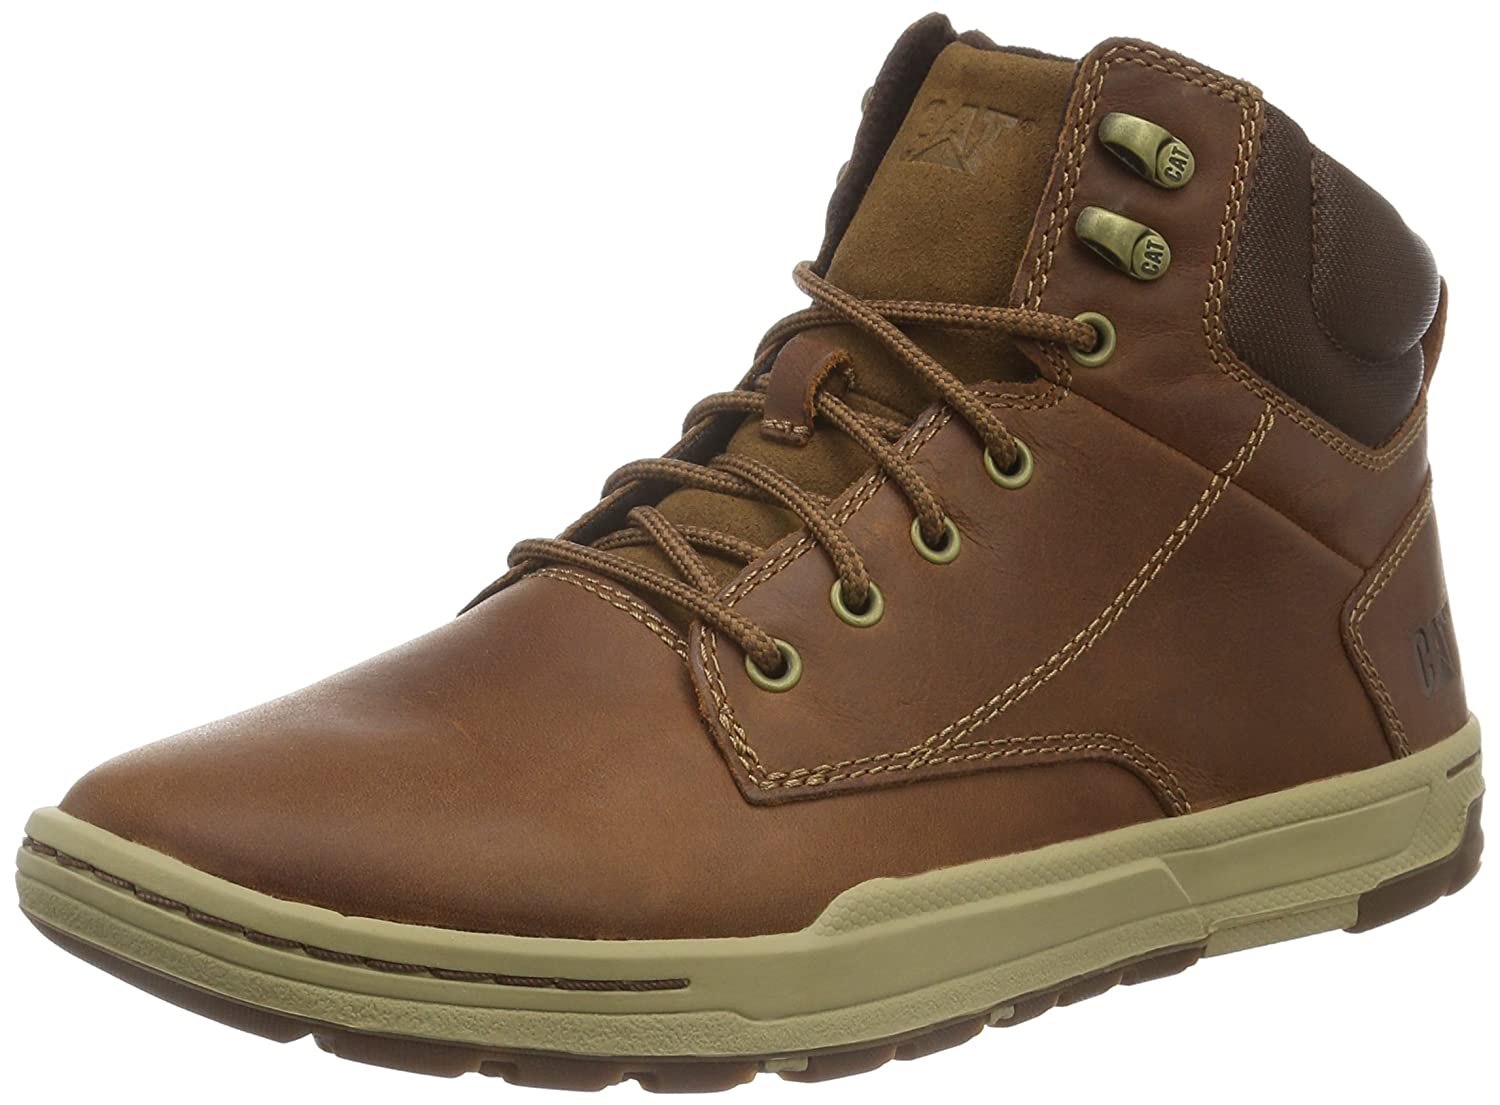 Caterpillar Colfax Mid, Baskets mode homme - Marron (Dark Beige), 42 EU